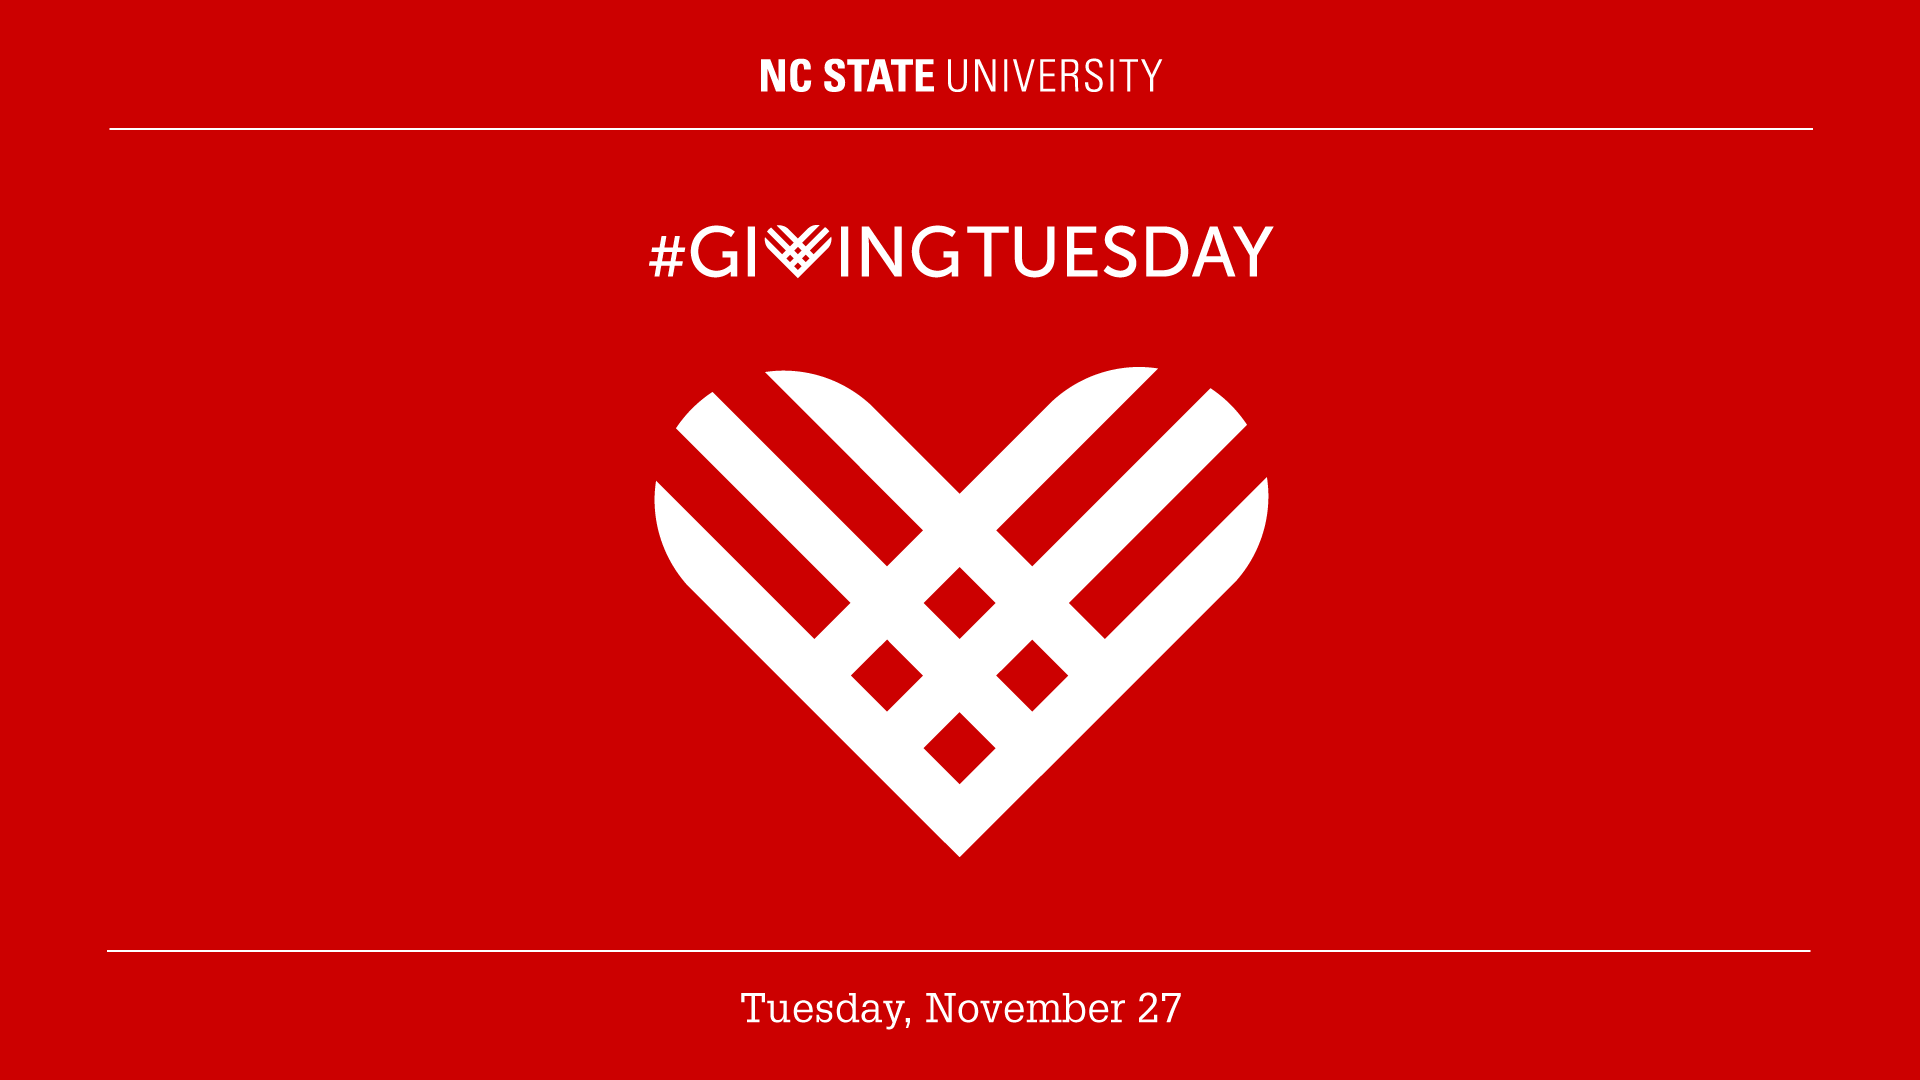 NC State Giving Tuesday